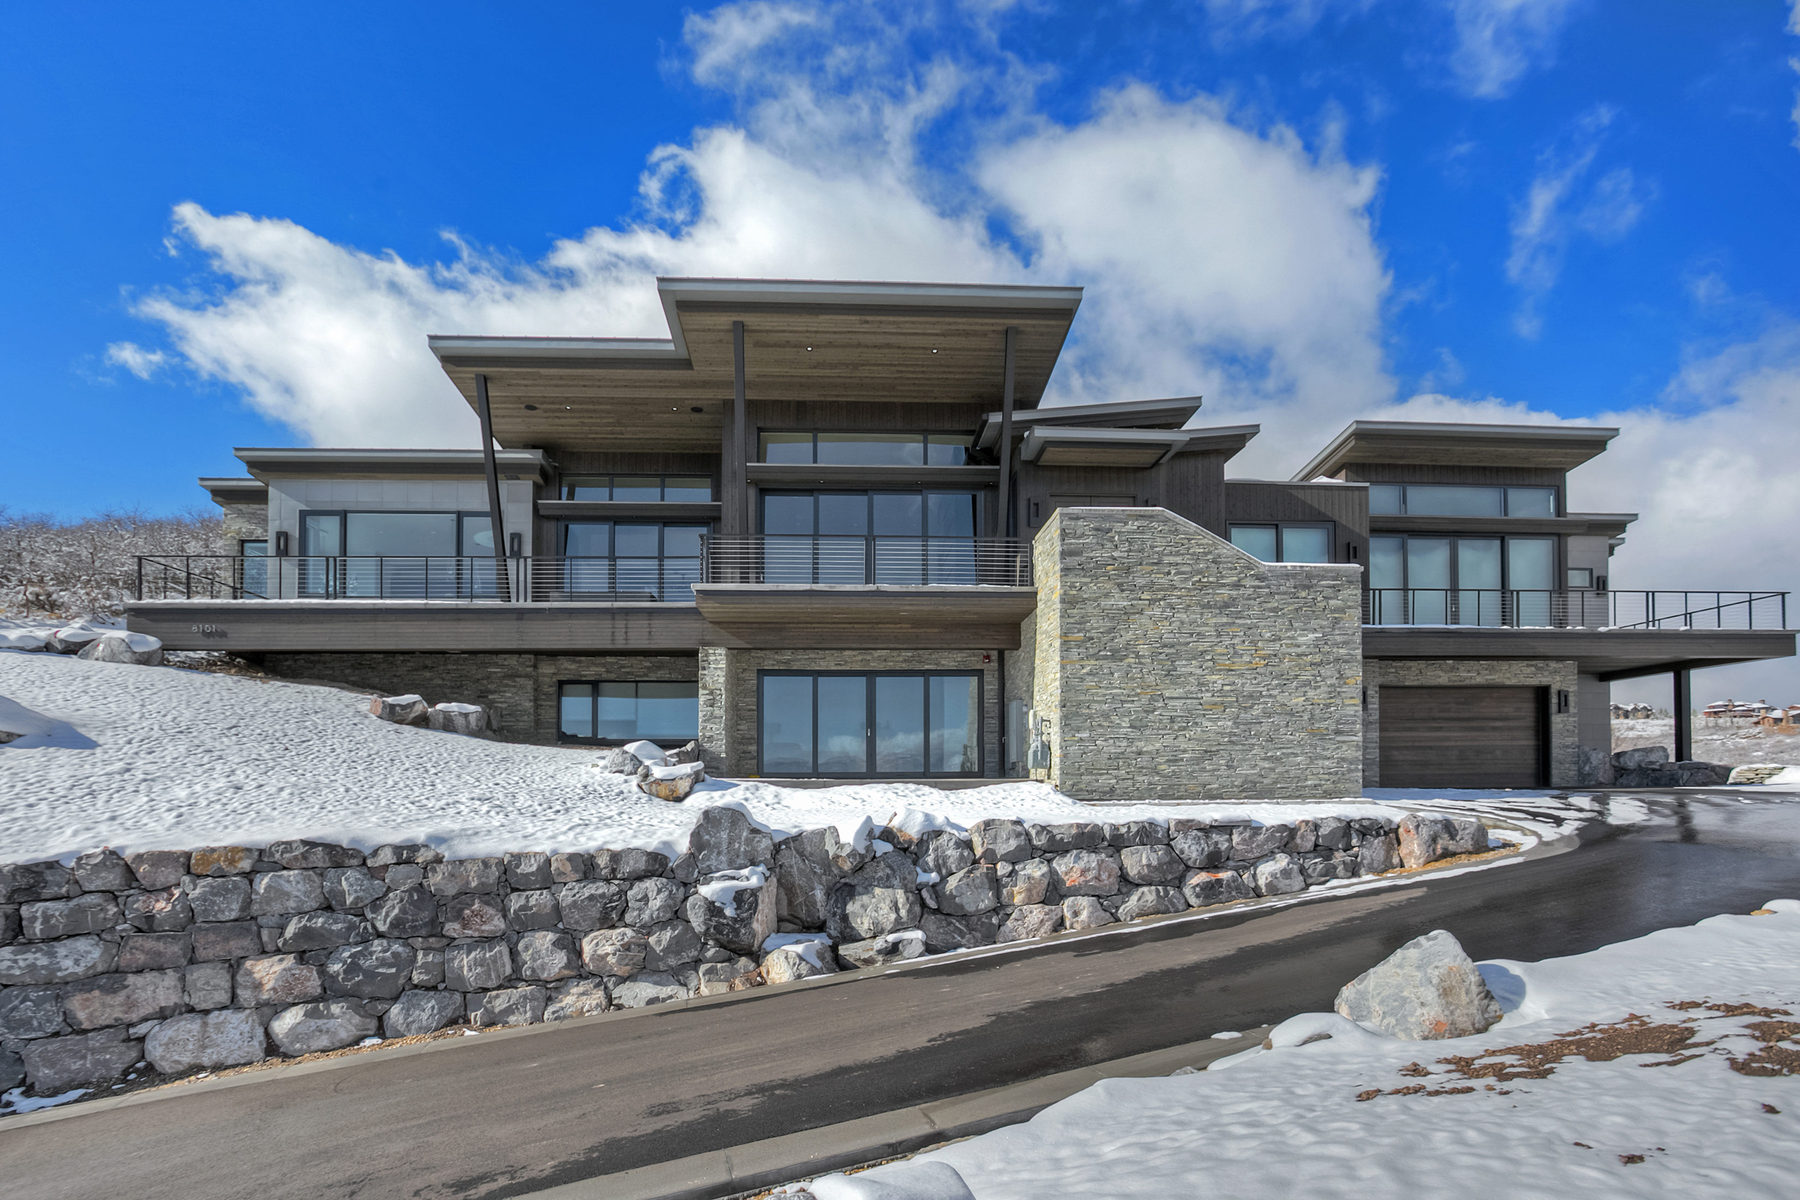 Moradia para Venda às Mountain Modern Masterpiece! 8101 N Sunrise Loop Park City, Utah, 84098 Estados Unidos